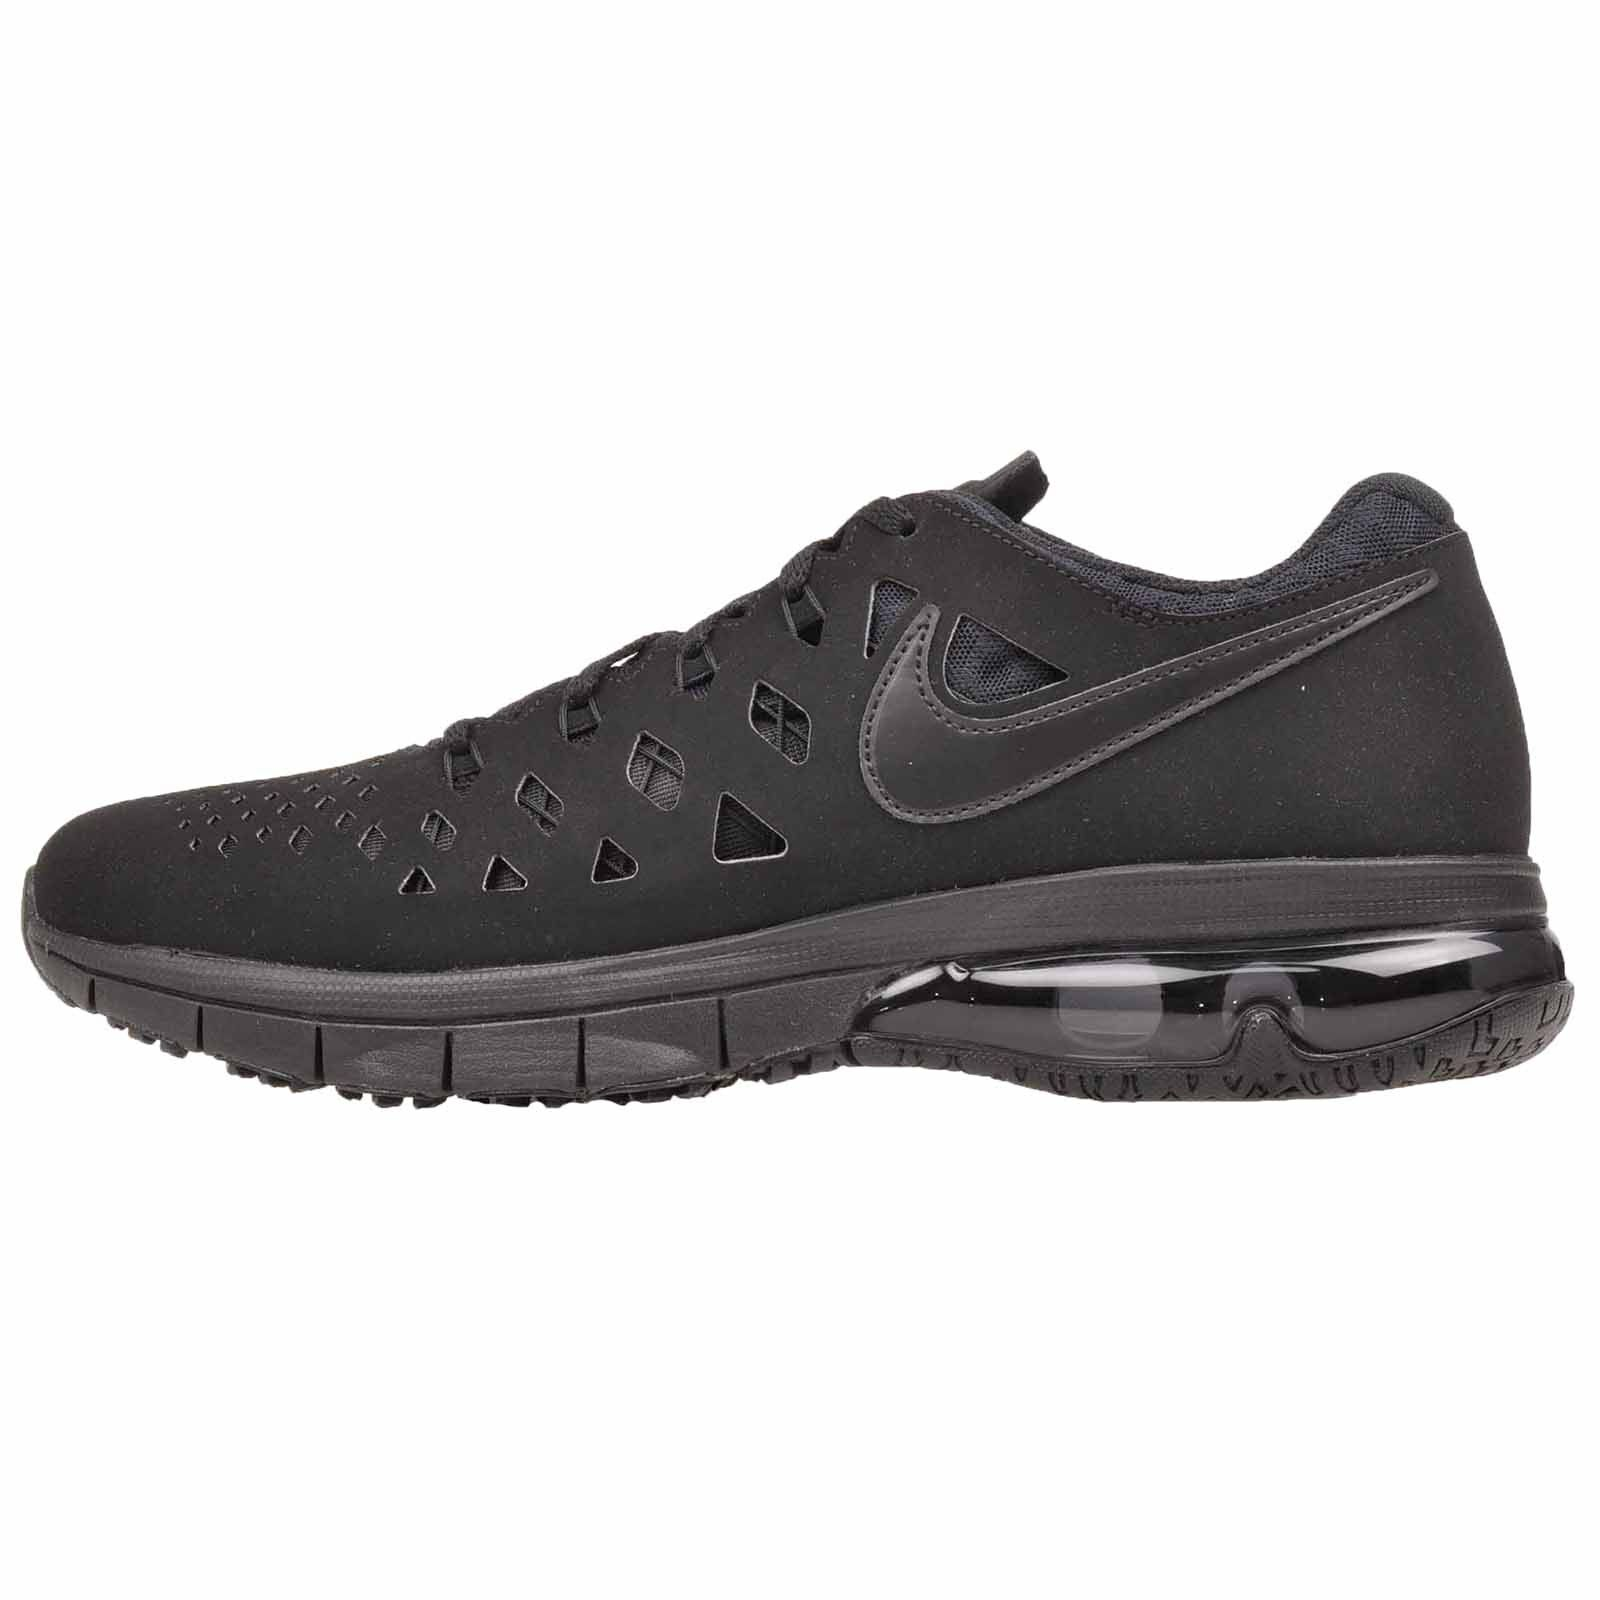 buy popular 8121a fe5f1 Nike Air Trainer Trainer Trainer 180 Cross Training Mens shoes Triple Black  NWOB 916460-003